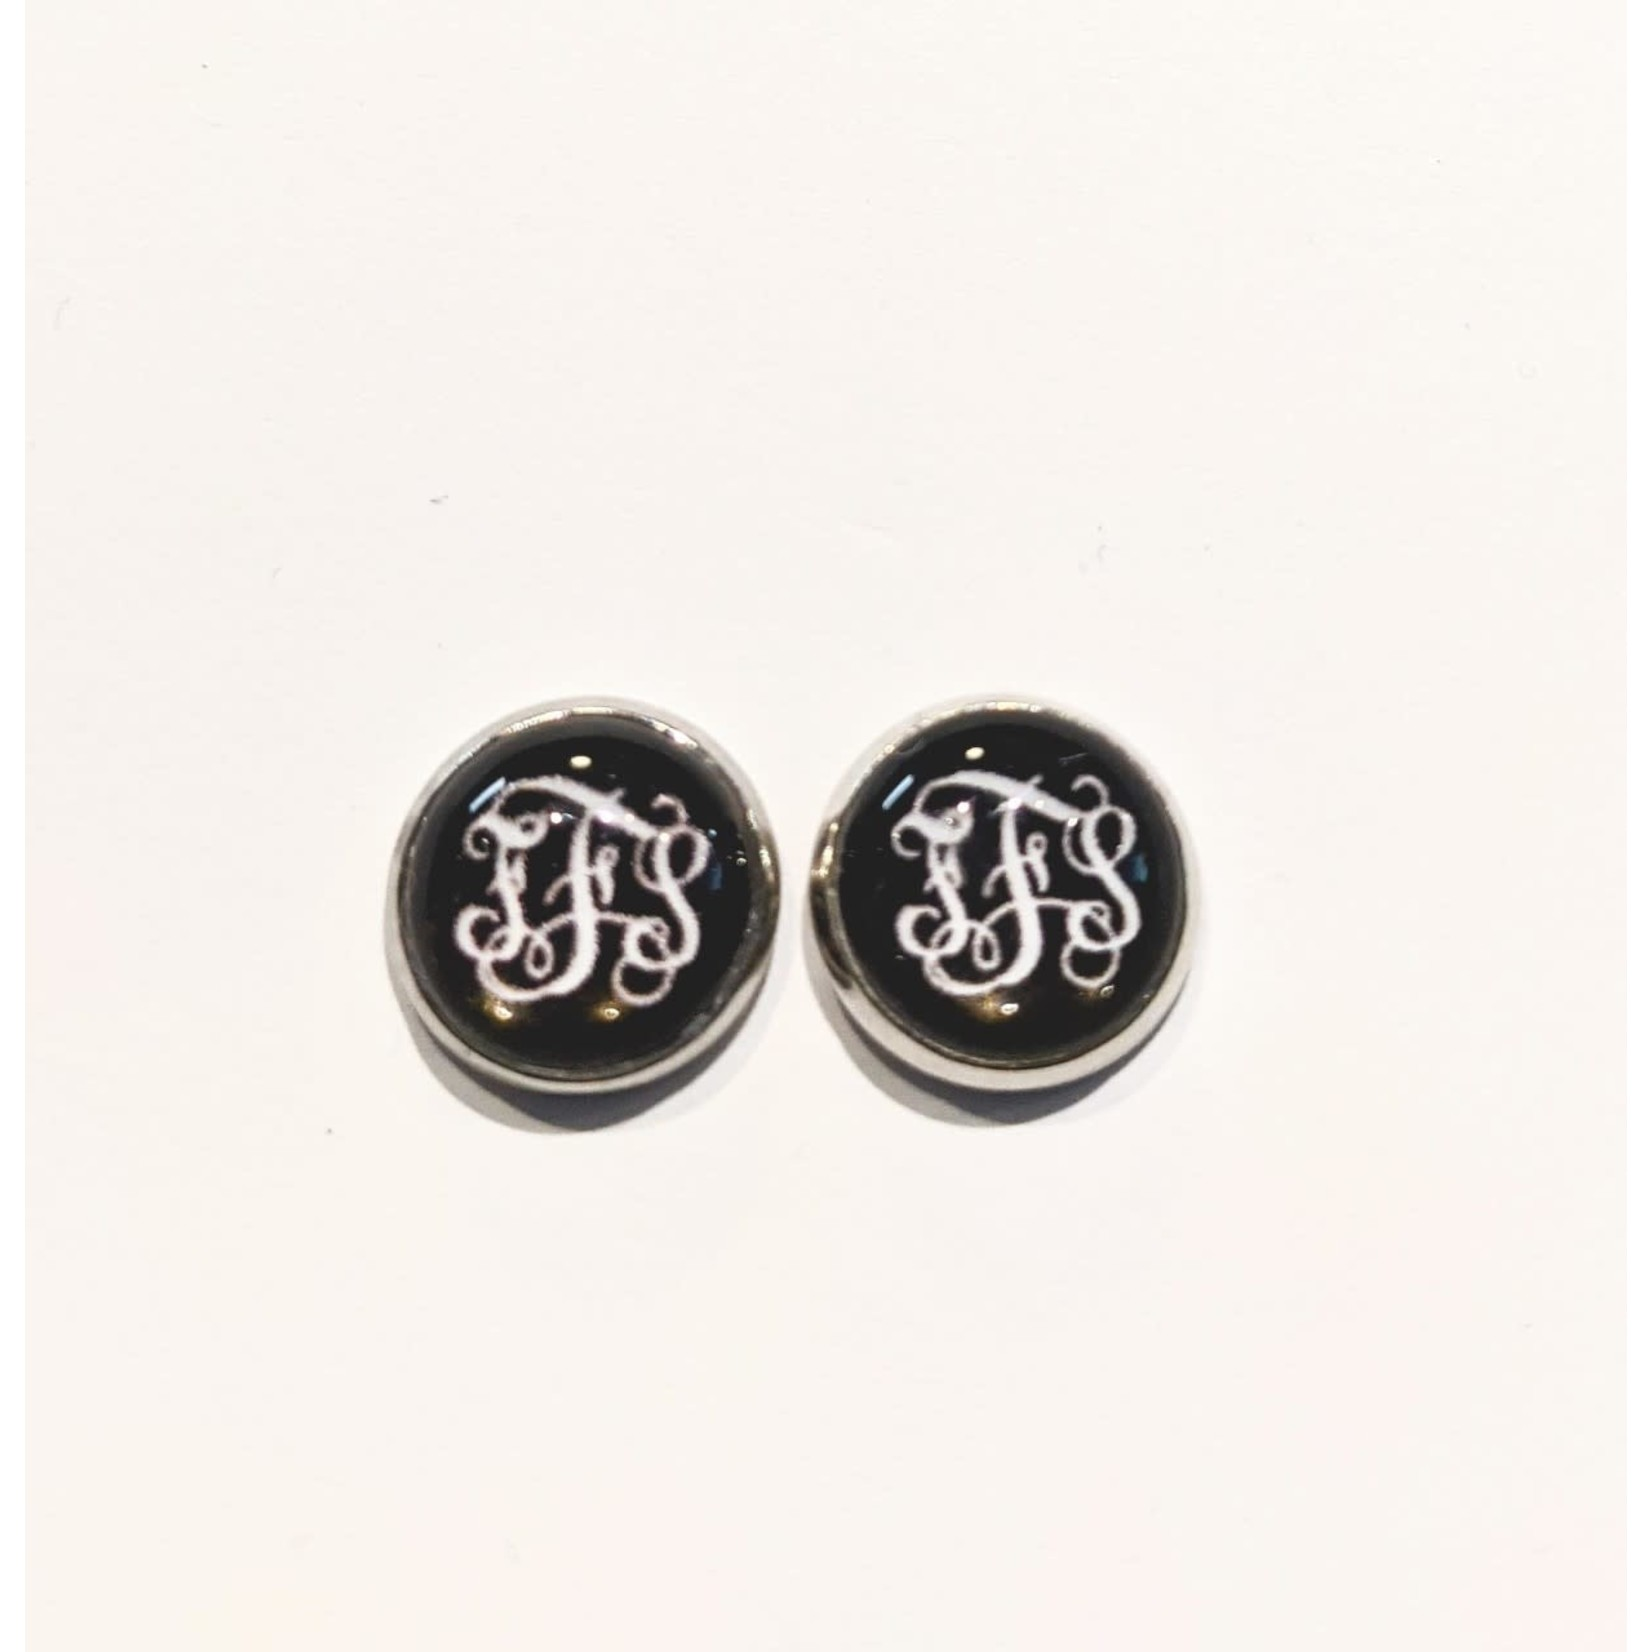 Earrings - FFS - Black With White Letters